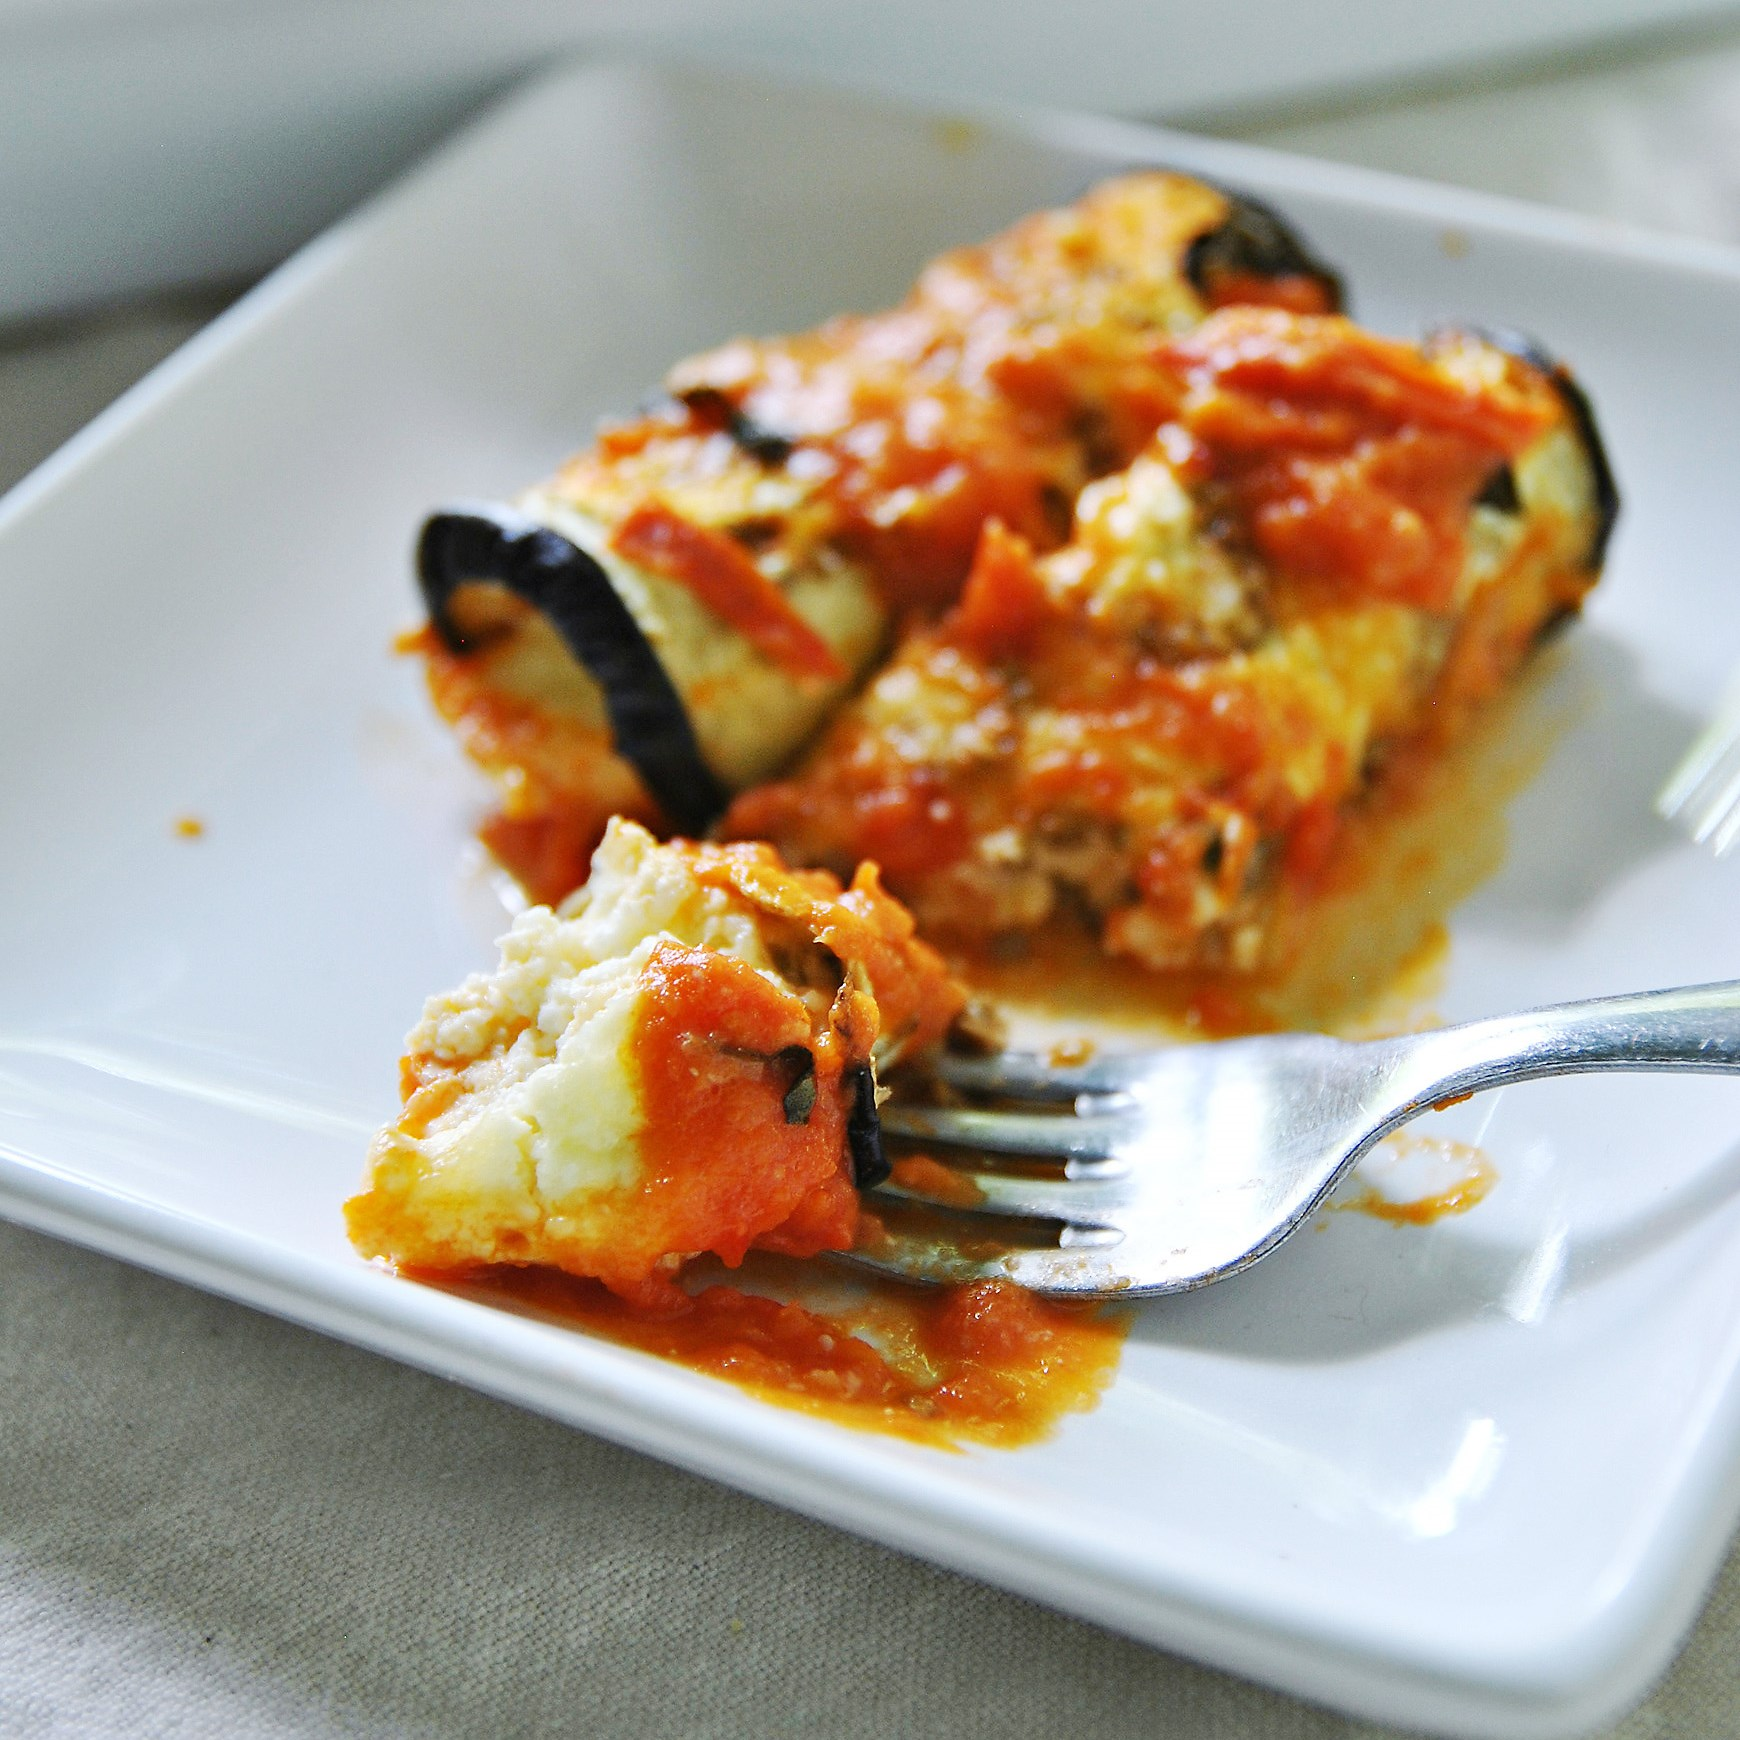 Let's Eat: Cheesy Eggplant Roll-ups